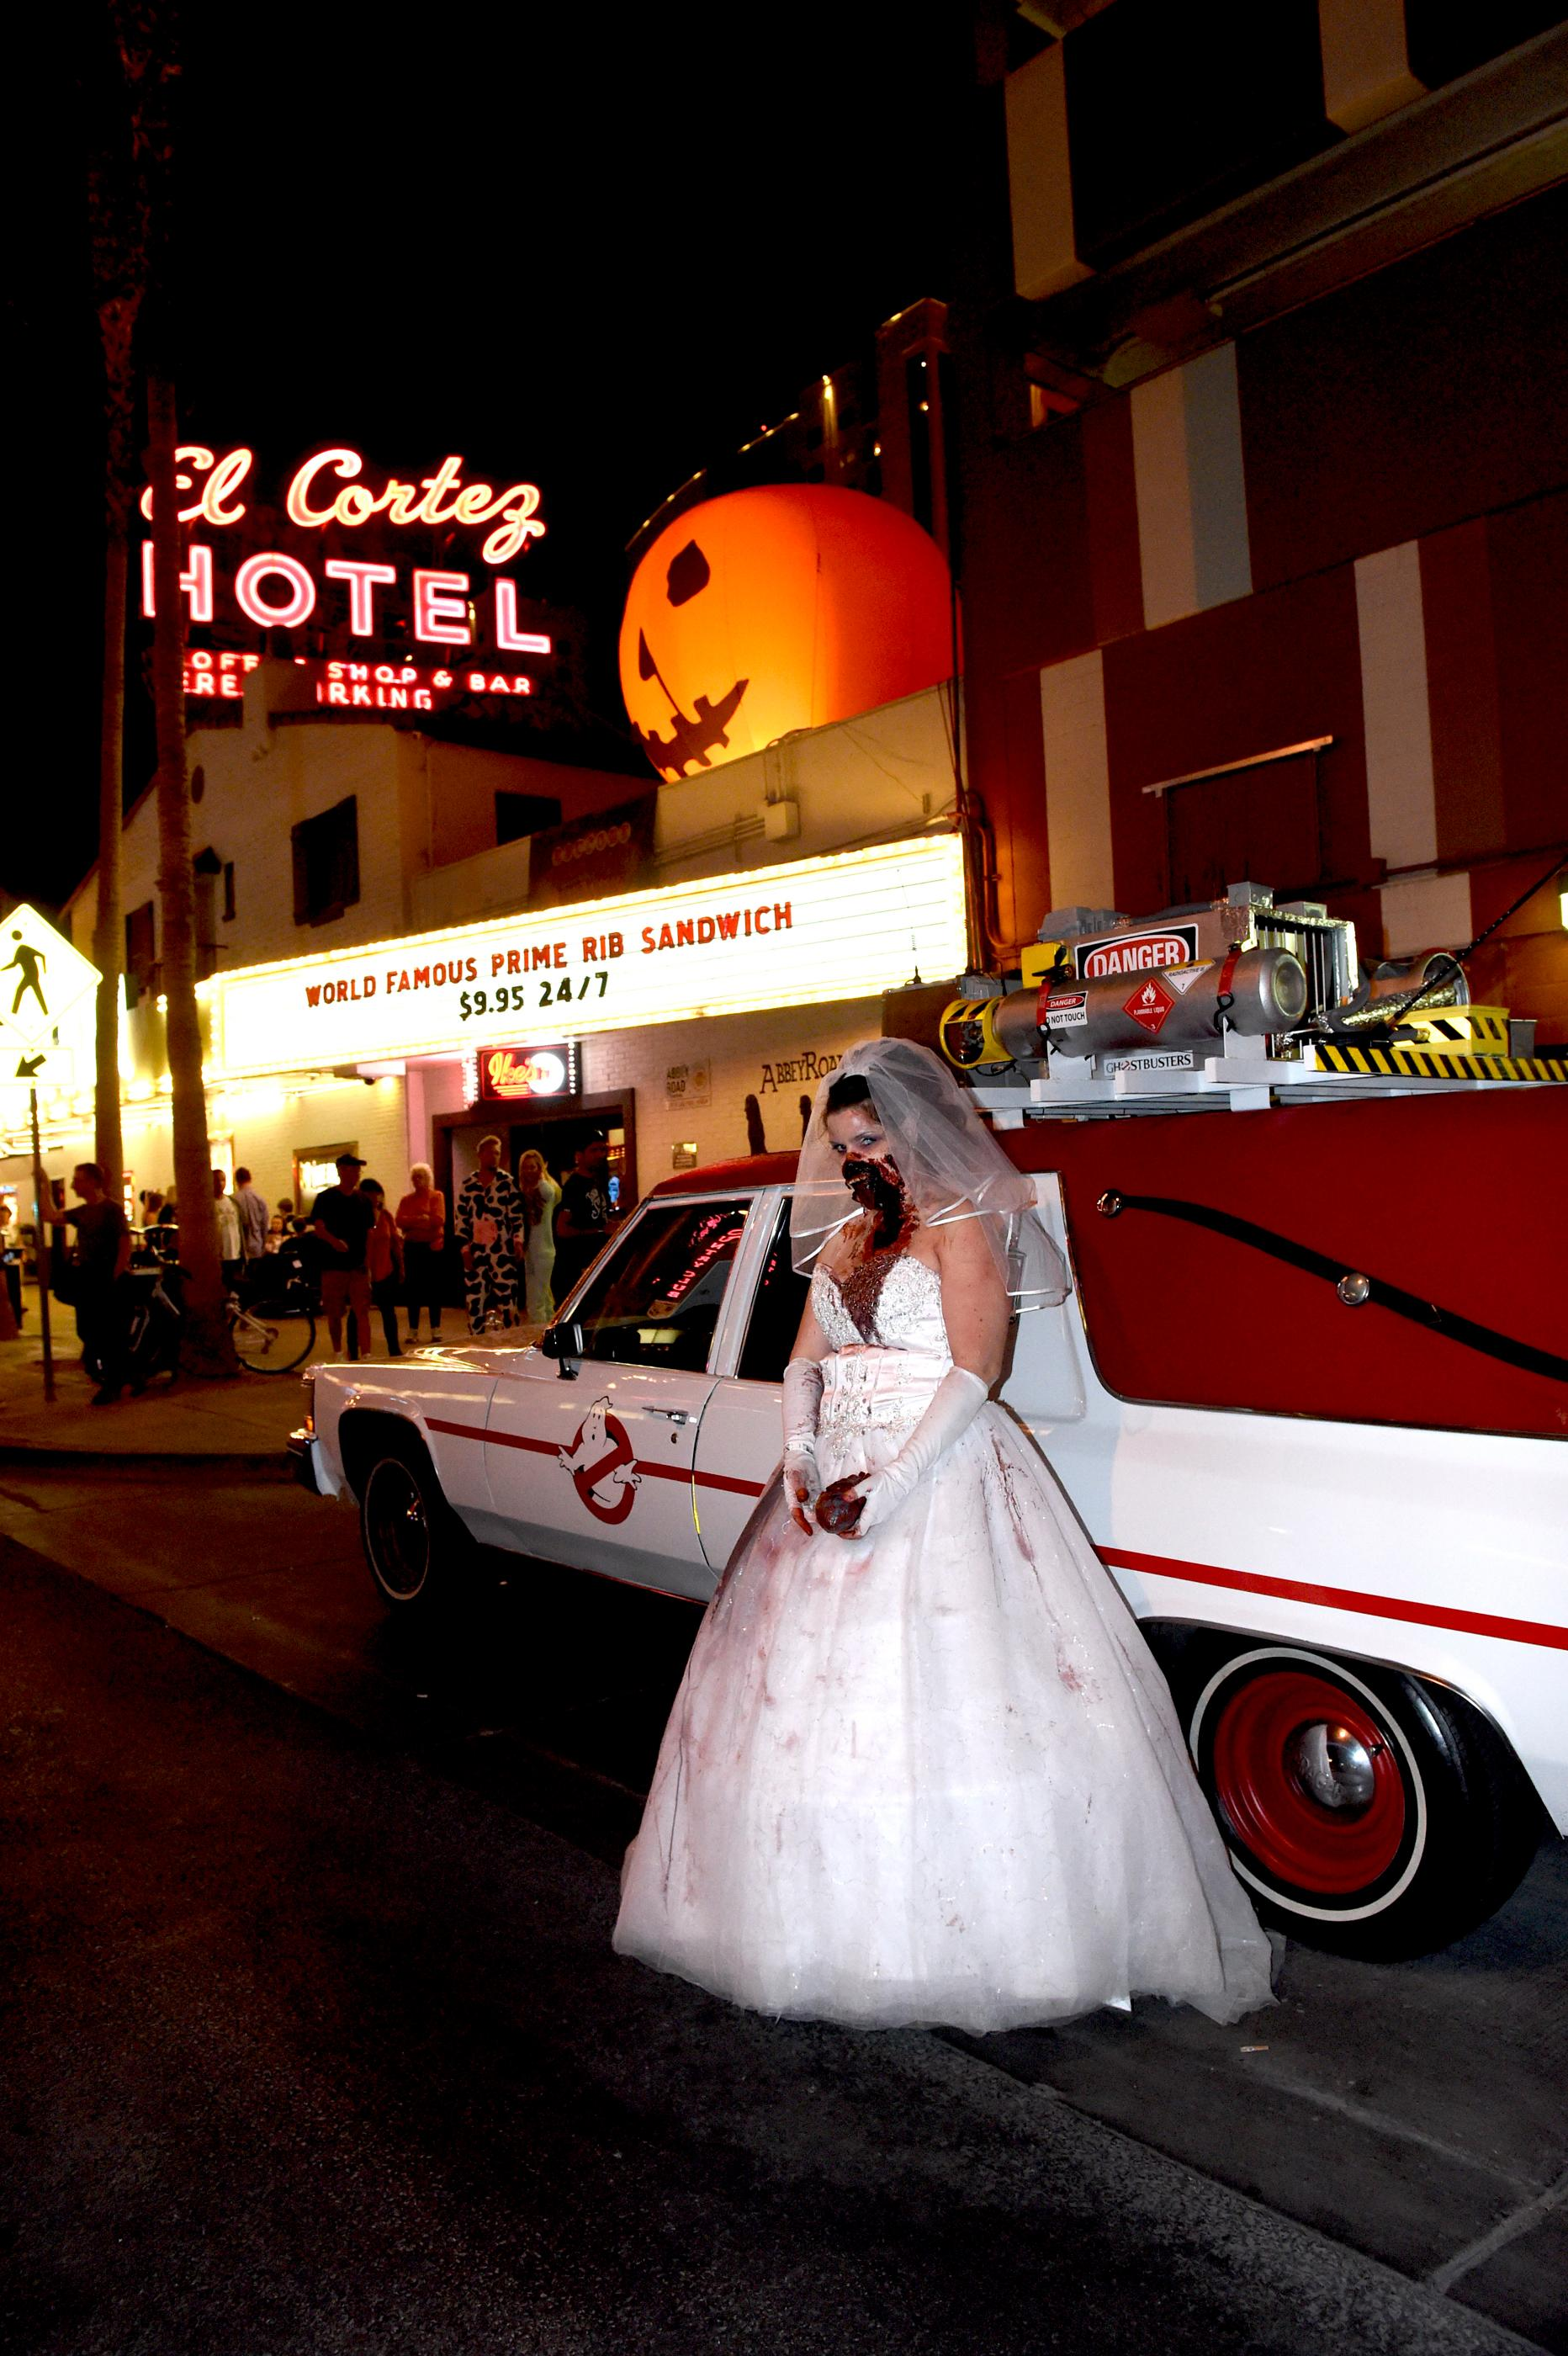 Crowds gather in costume to watch and participate in the Sin City Halloween Parade in the East Fremont District. Saturday, October 28, 2017. [Glenn Pinkerton/Las Vegas News Bureau]